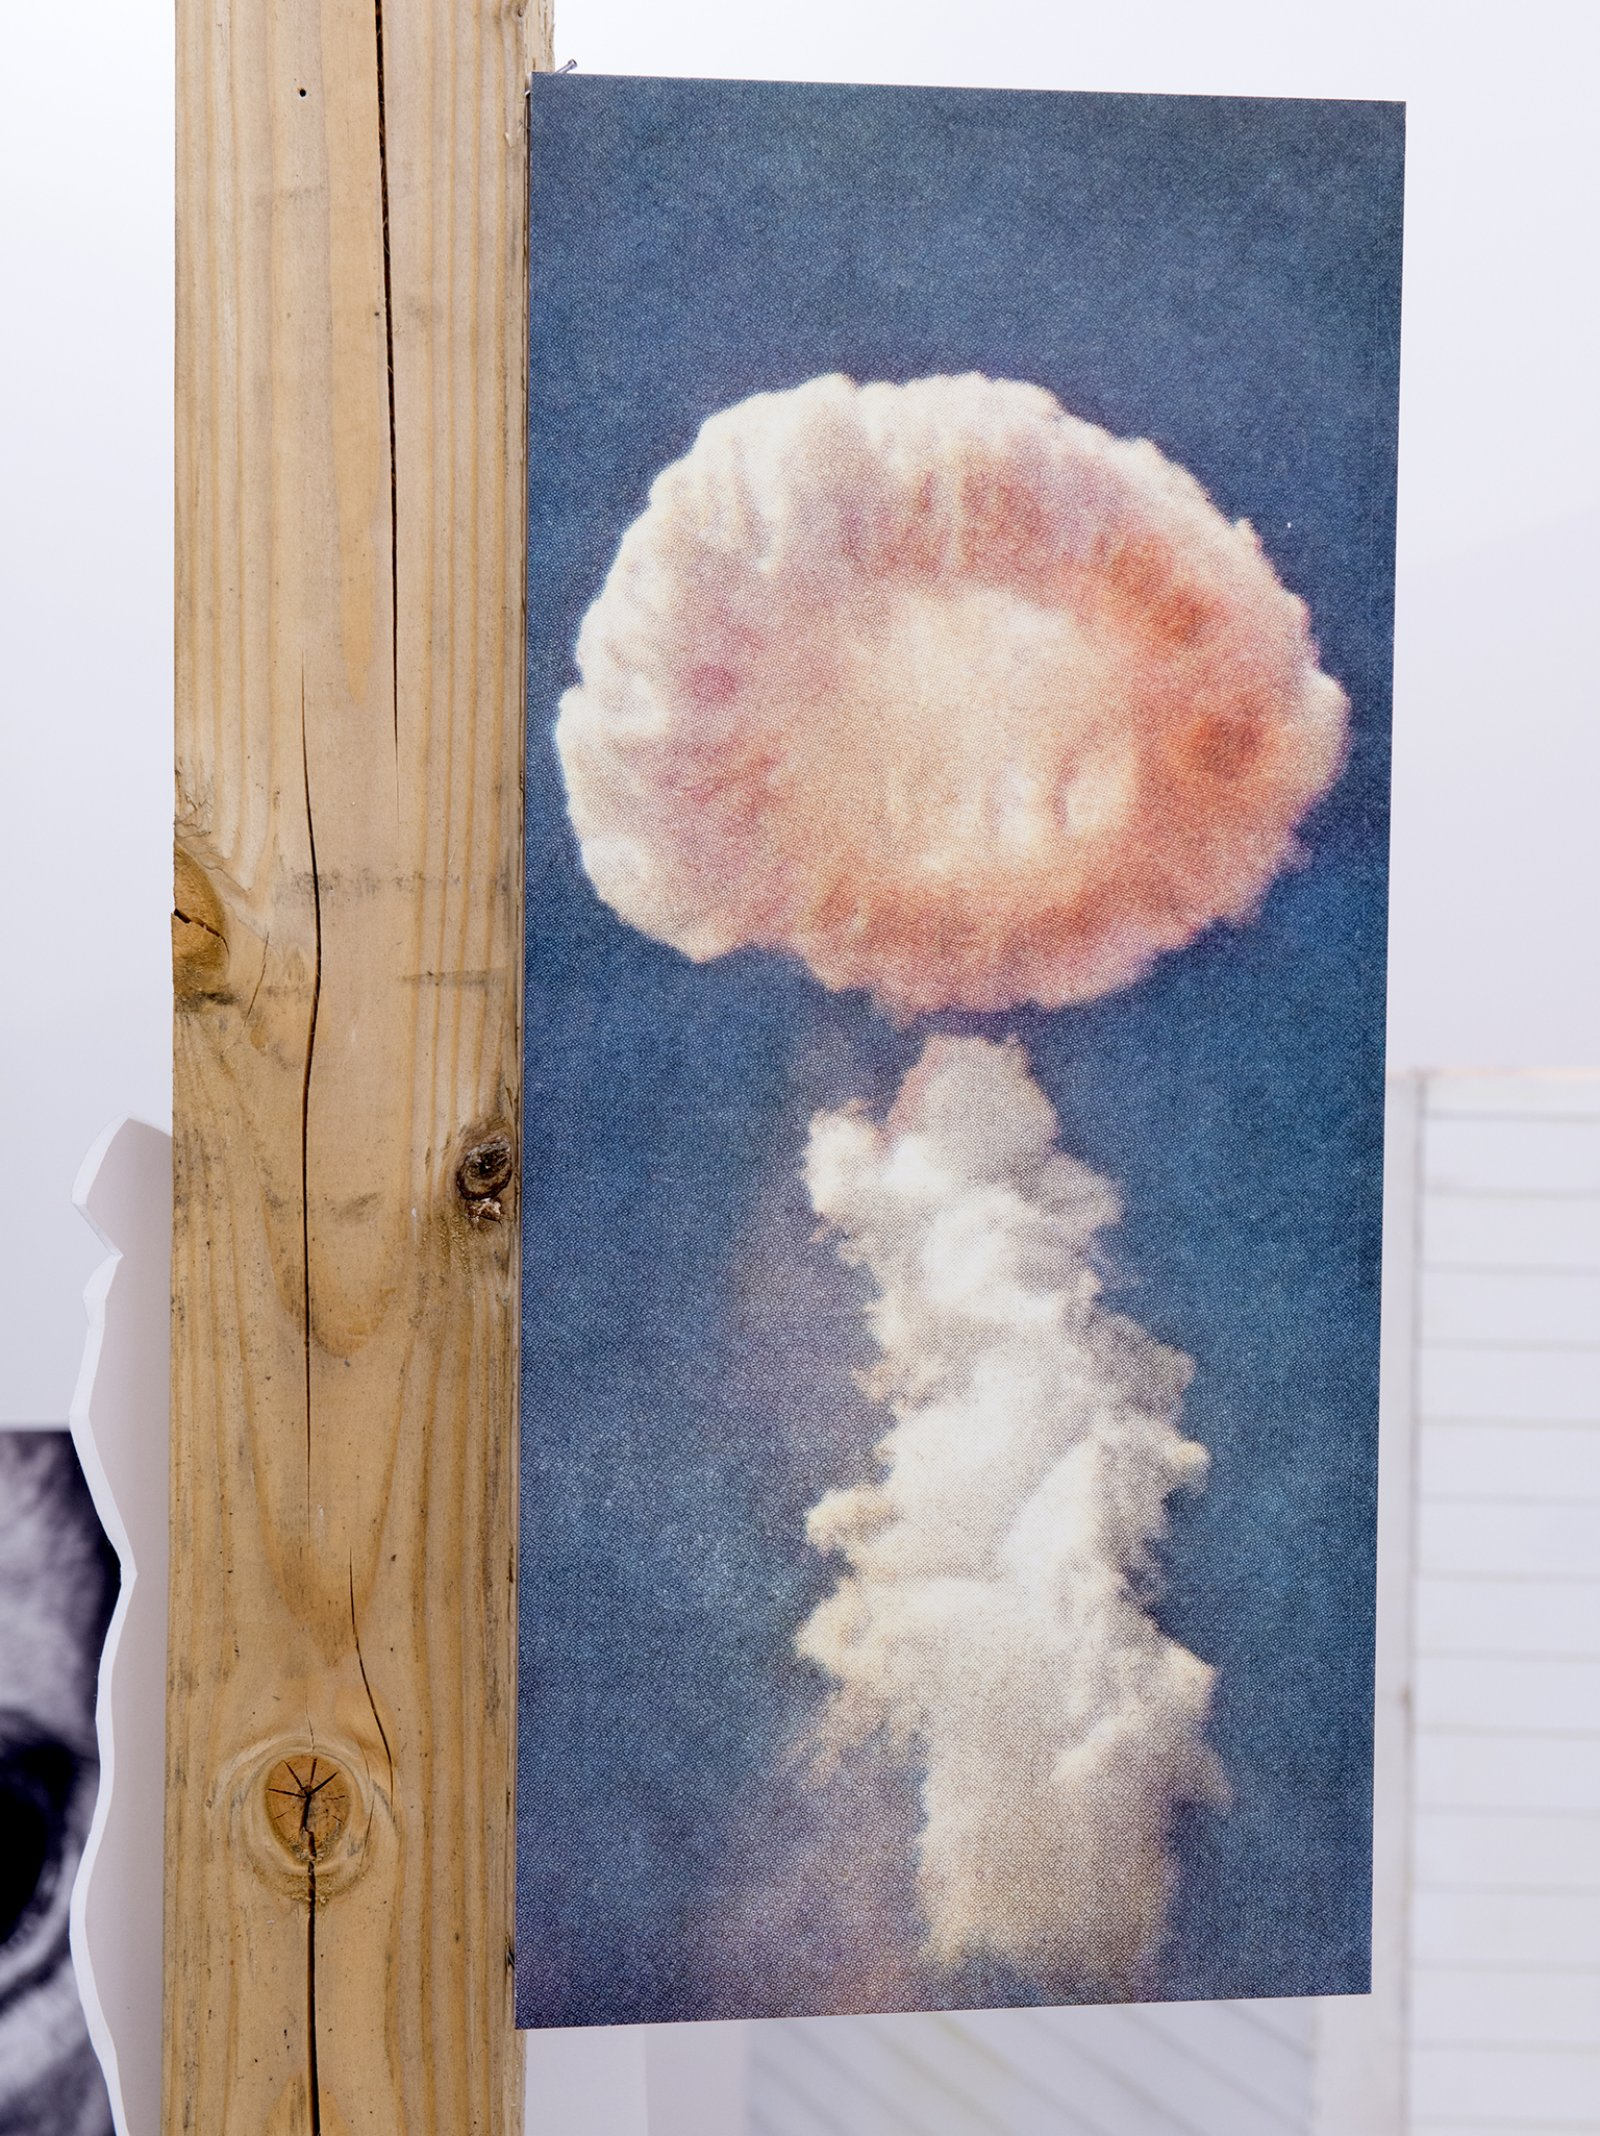 Geoffrey Farmer, Dreams of the sleeping monkey. (detail), 2014, douglas fir pole, 10 photographs mounted on foamcore, 200 x 4 x 4 in. (508 x 9 x 9 cm)​​ by Geoffrey Farmer